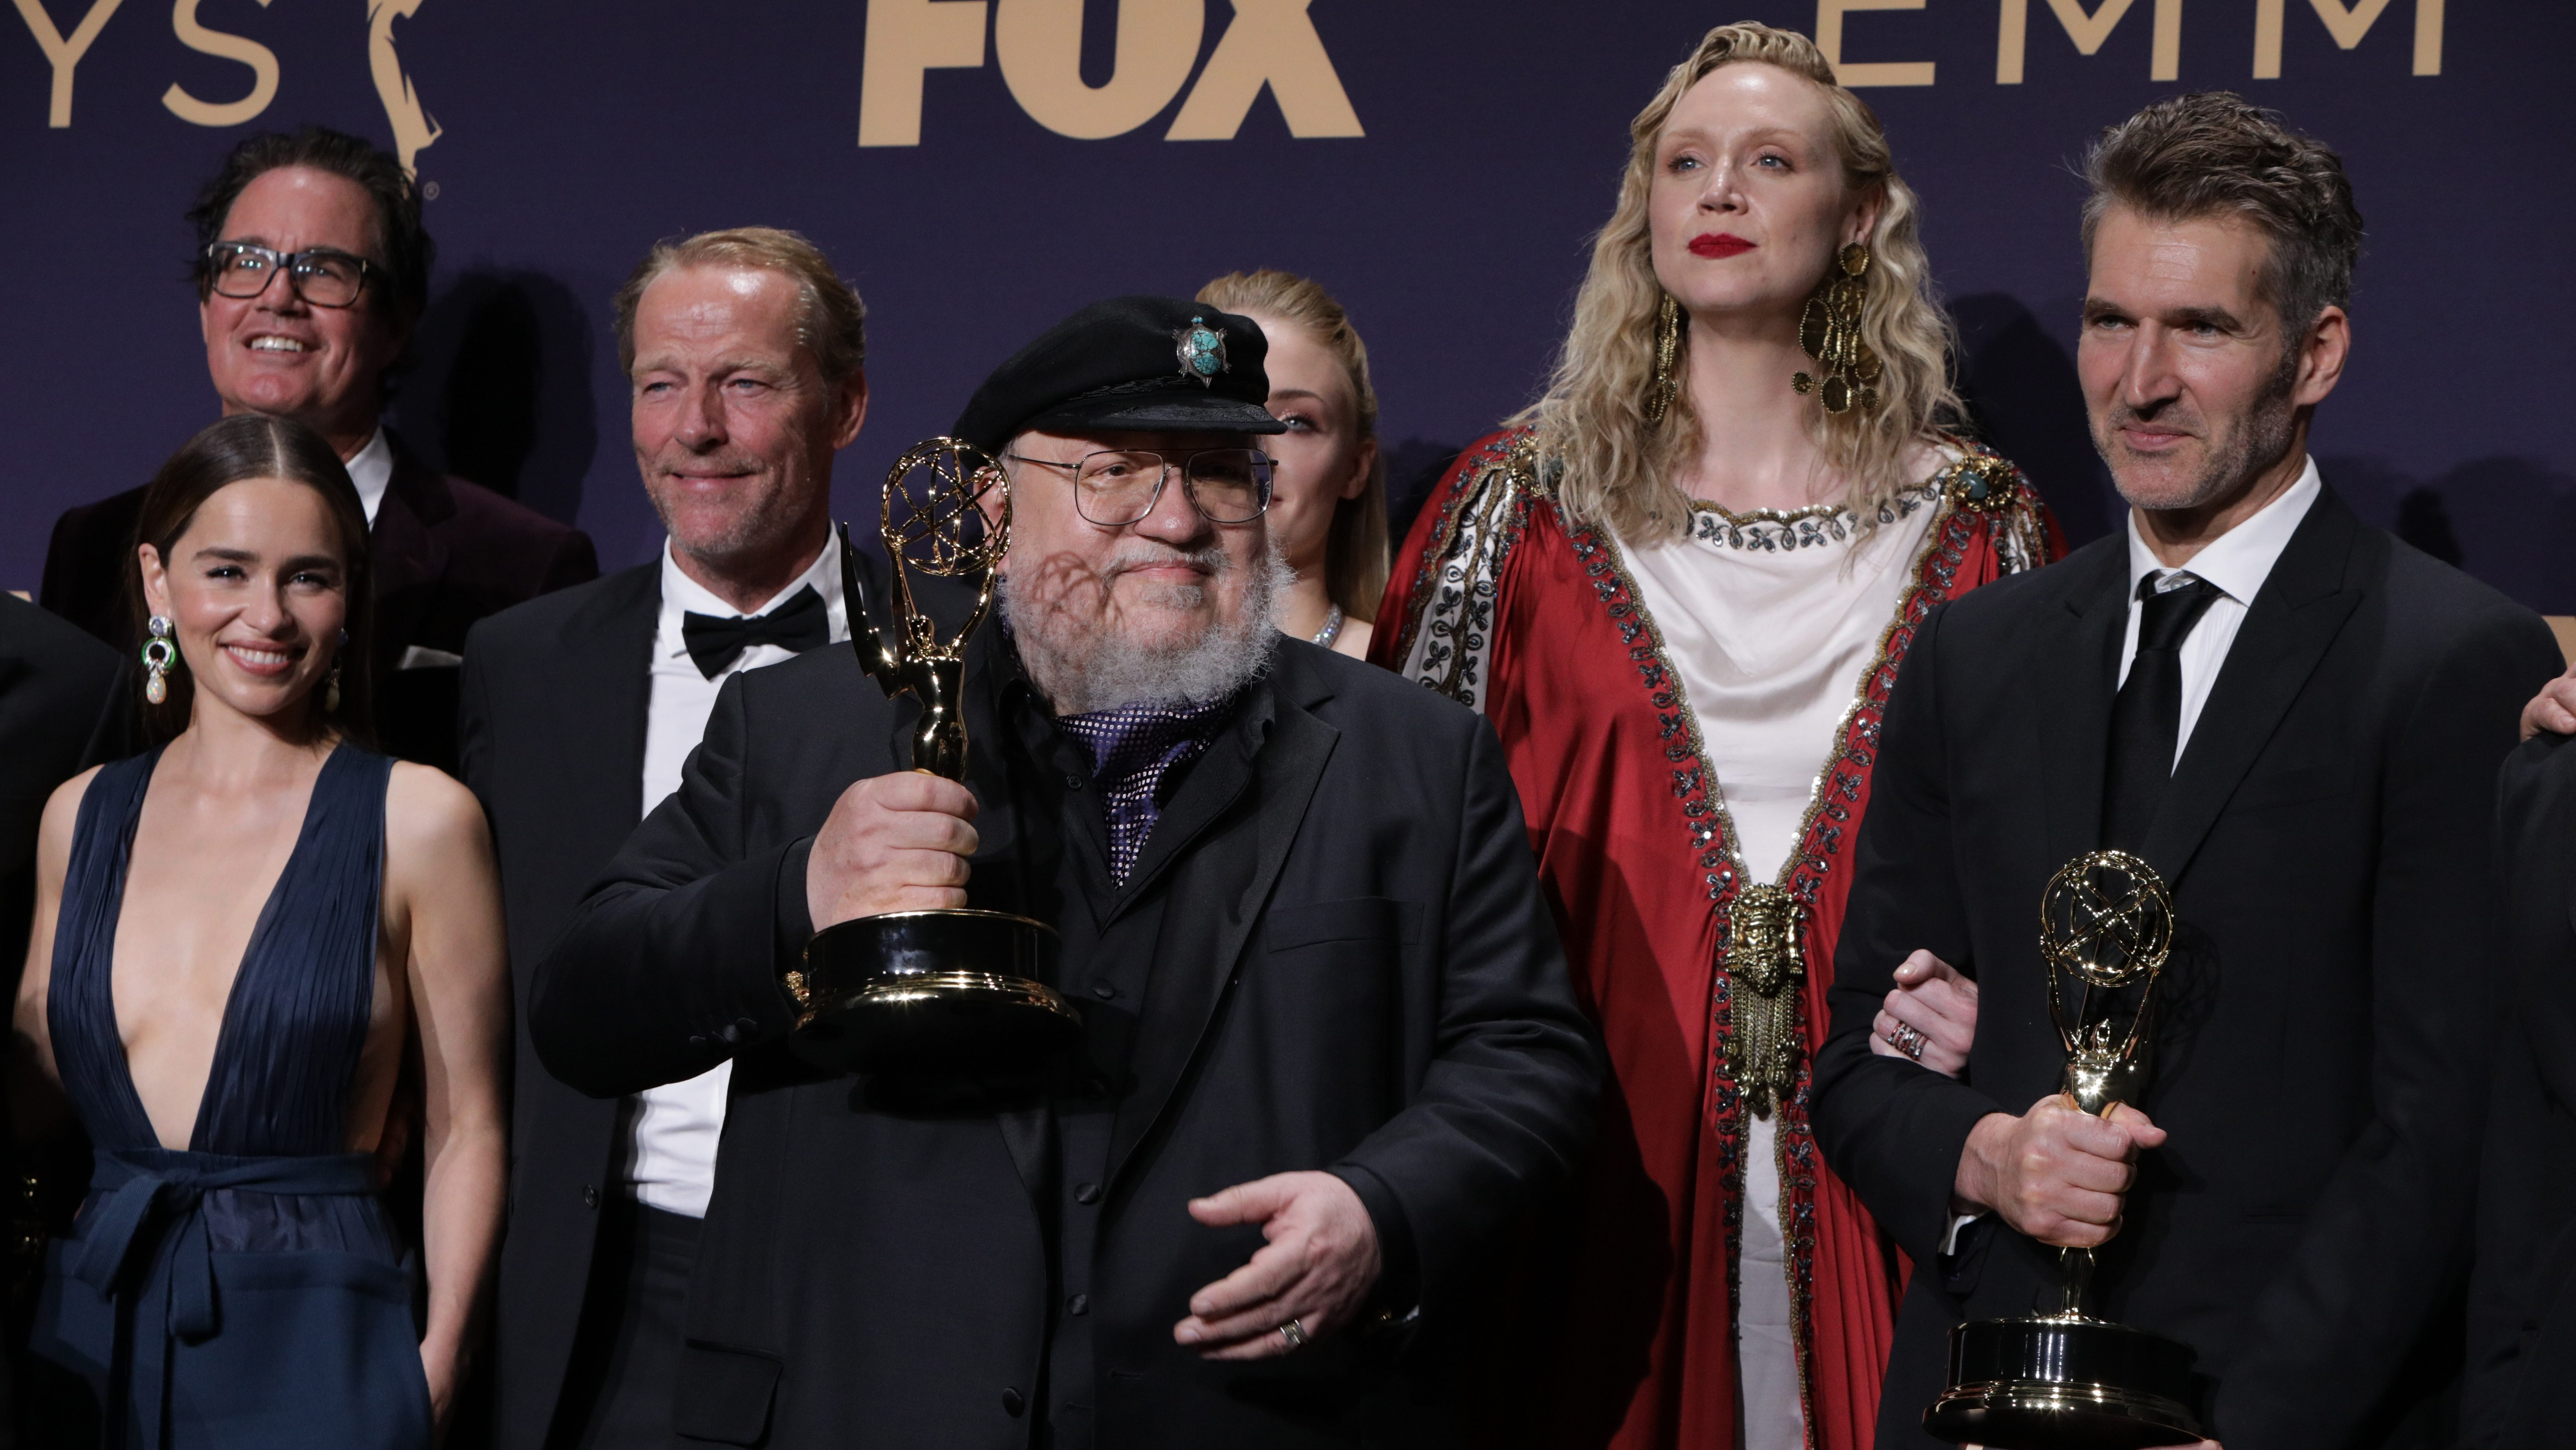 george r.r. martin accepting an award for game of thrones